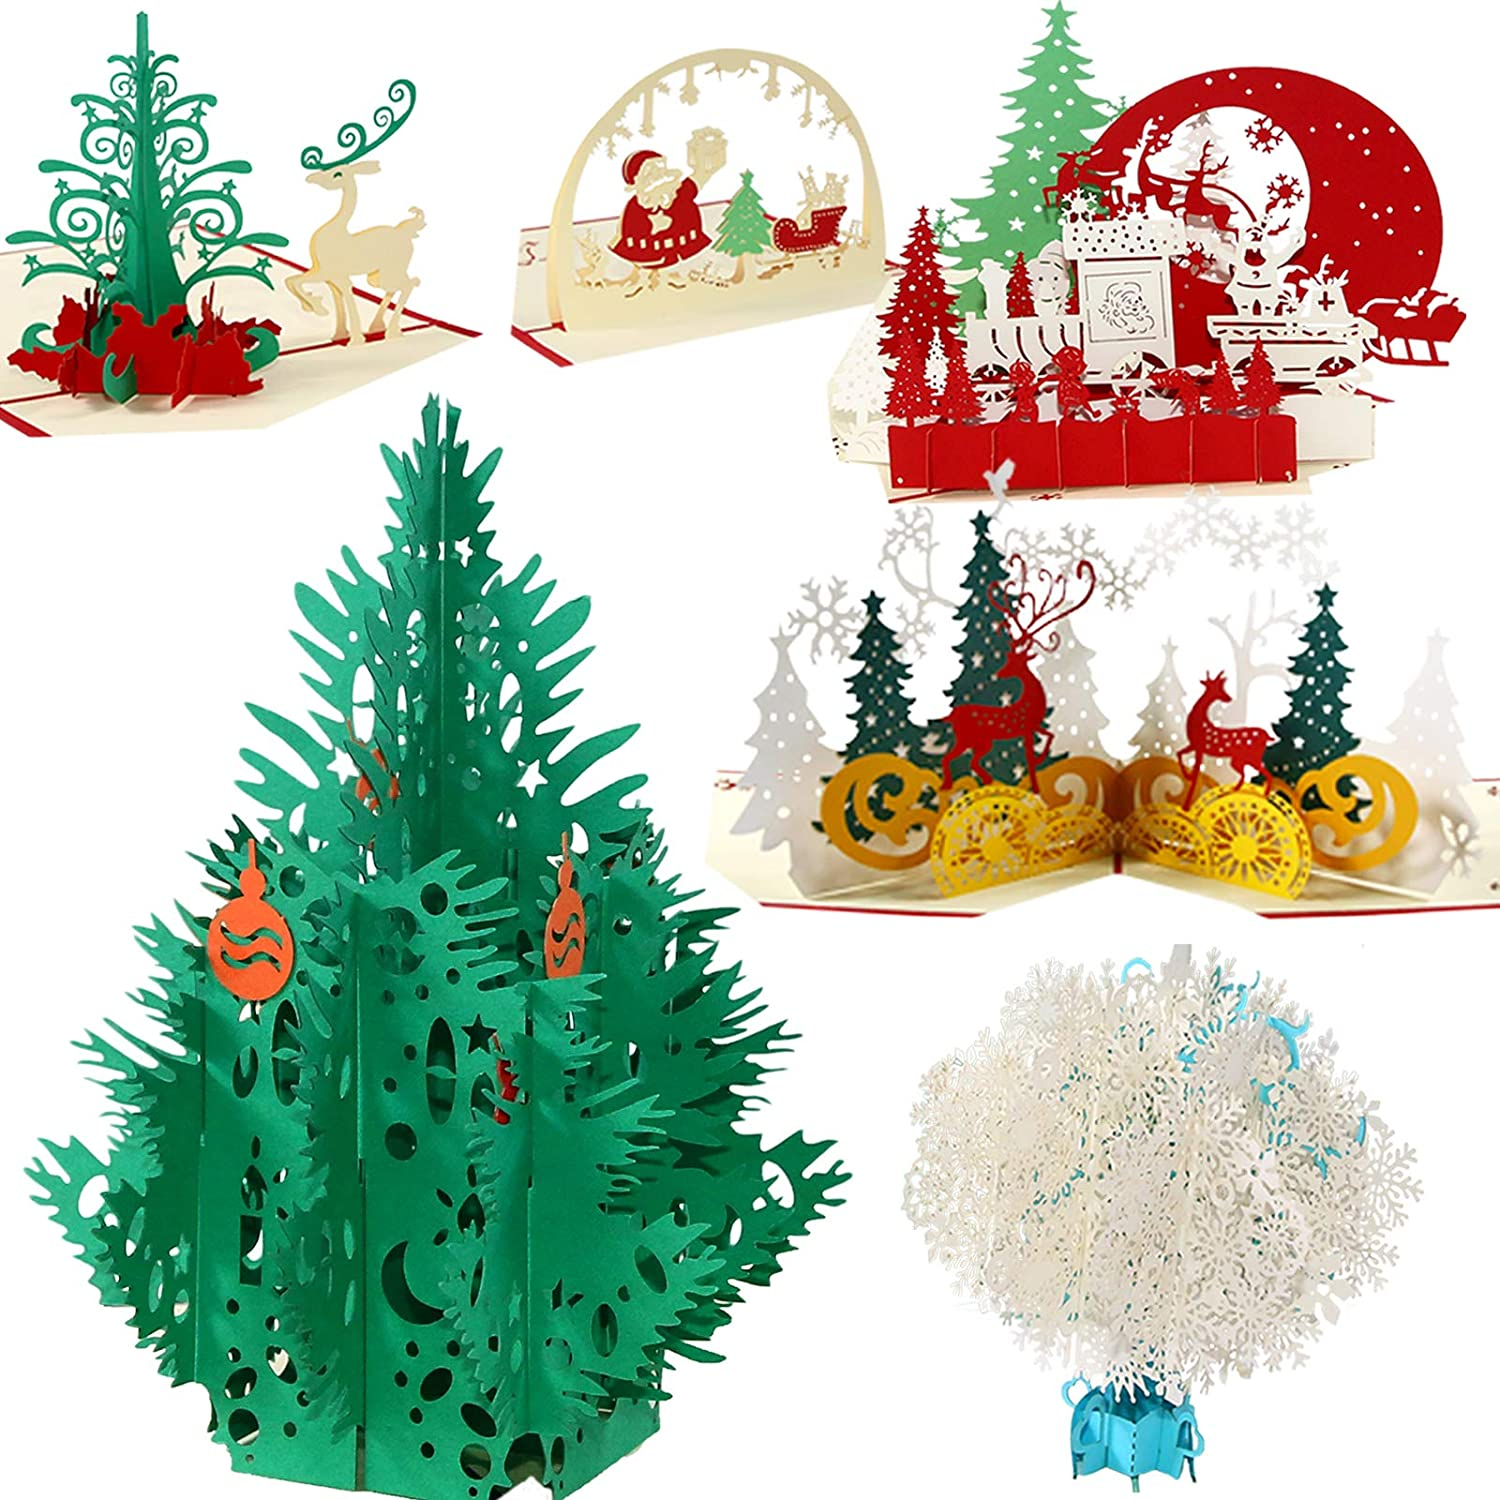 Pop Up Cards,3D Christmas Card Set of 6 Pack Unique 3D Holiday New Year Xmas Greeting PostCards with Envelopes,Handmade Thank You Card Gifts,Snowflake,Tree,Snowman,Reindeer